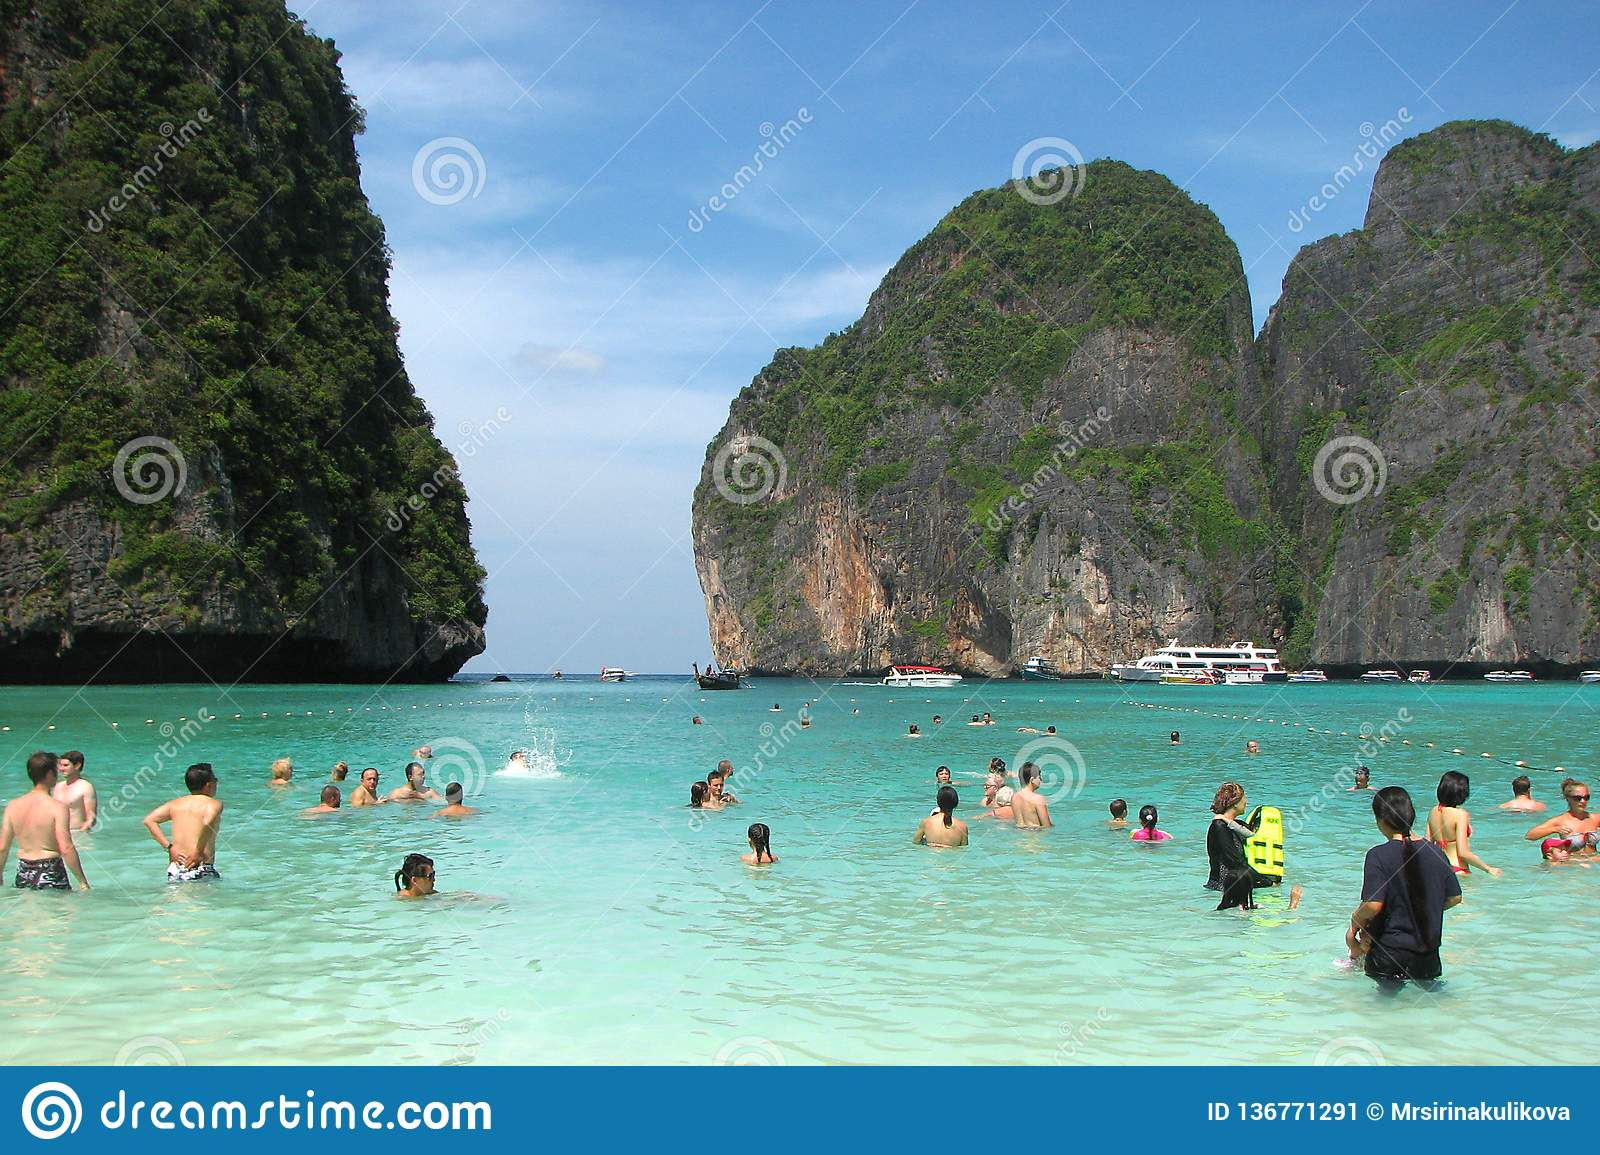 Tourists and tourist boats on the famous beach in Maya Bay on one of the islands of Phi Phi, Thailand